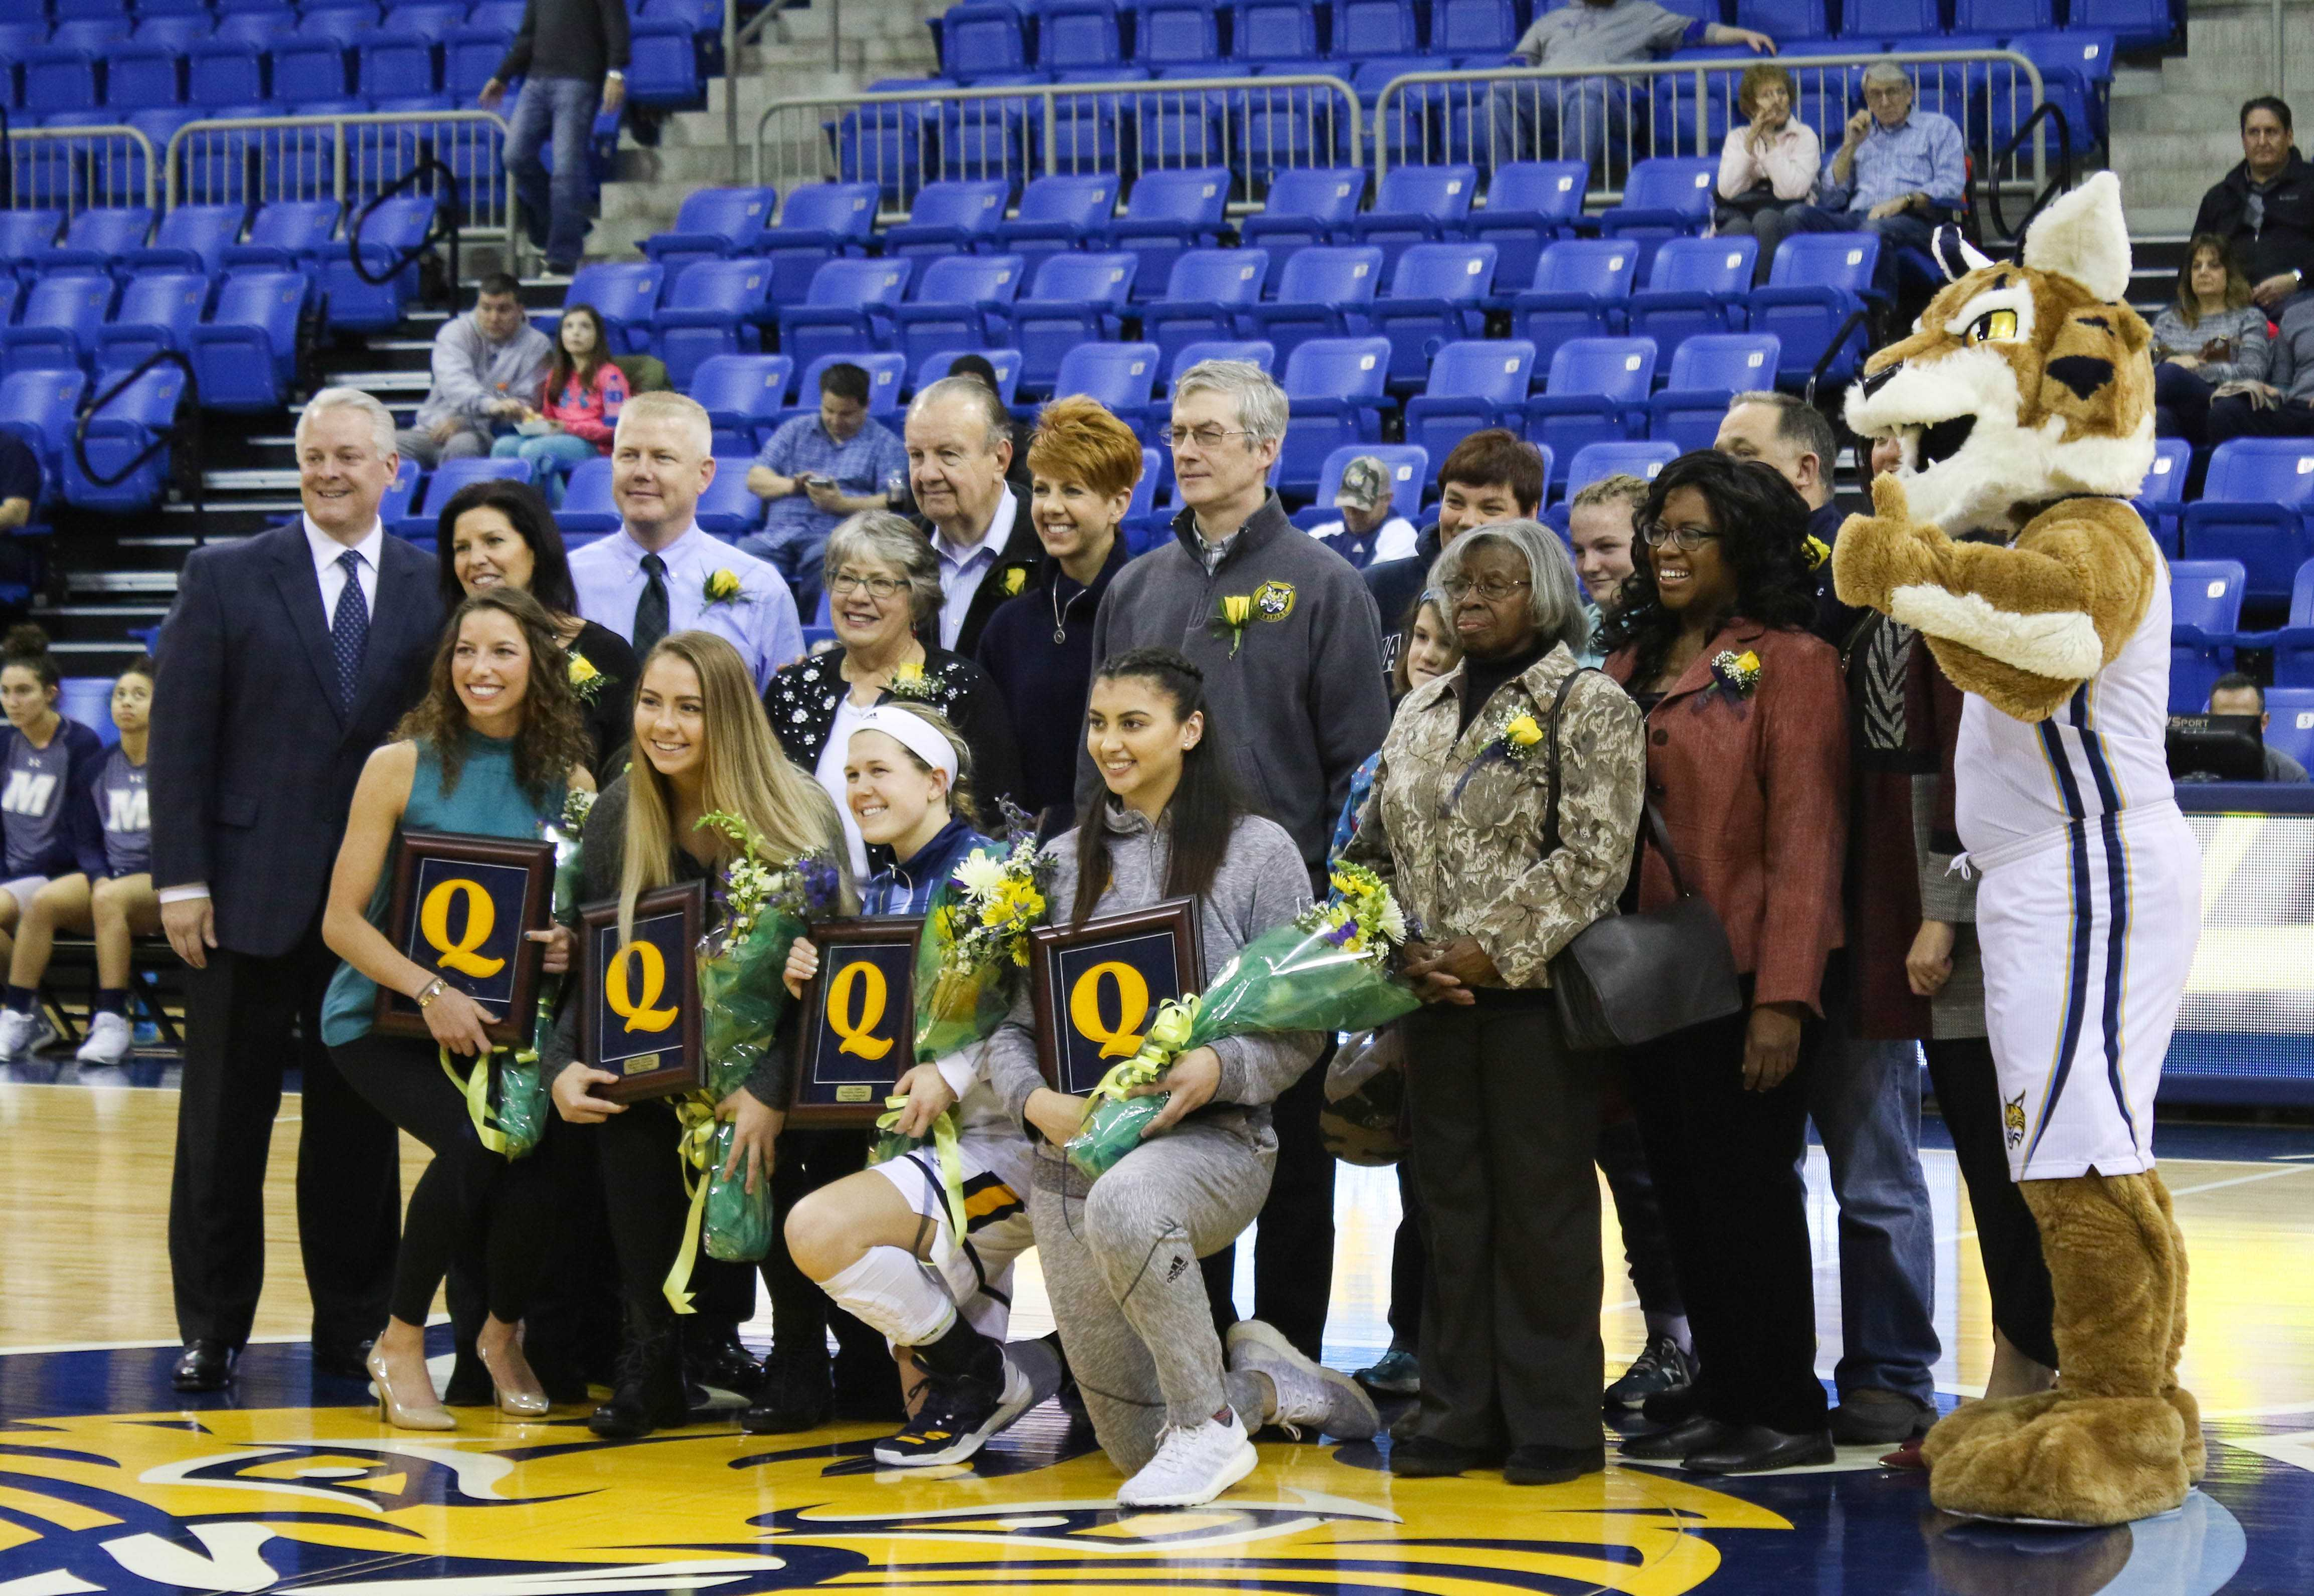 Quinnipiac women's basketball tops Monmouth on Senior Day to extend win streak to 19